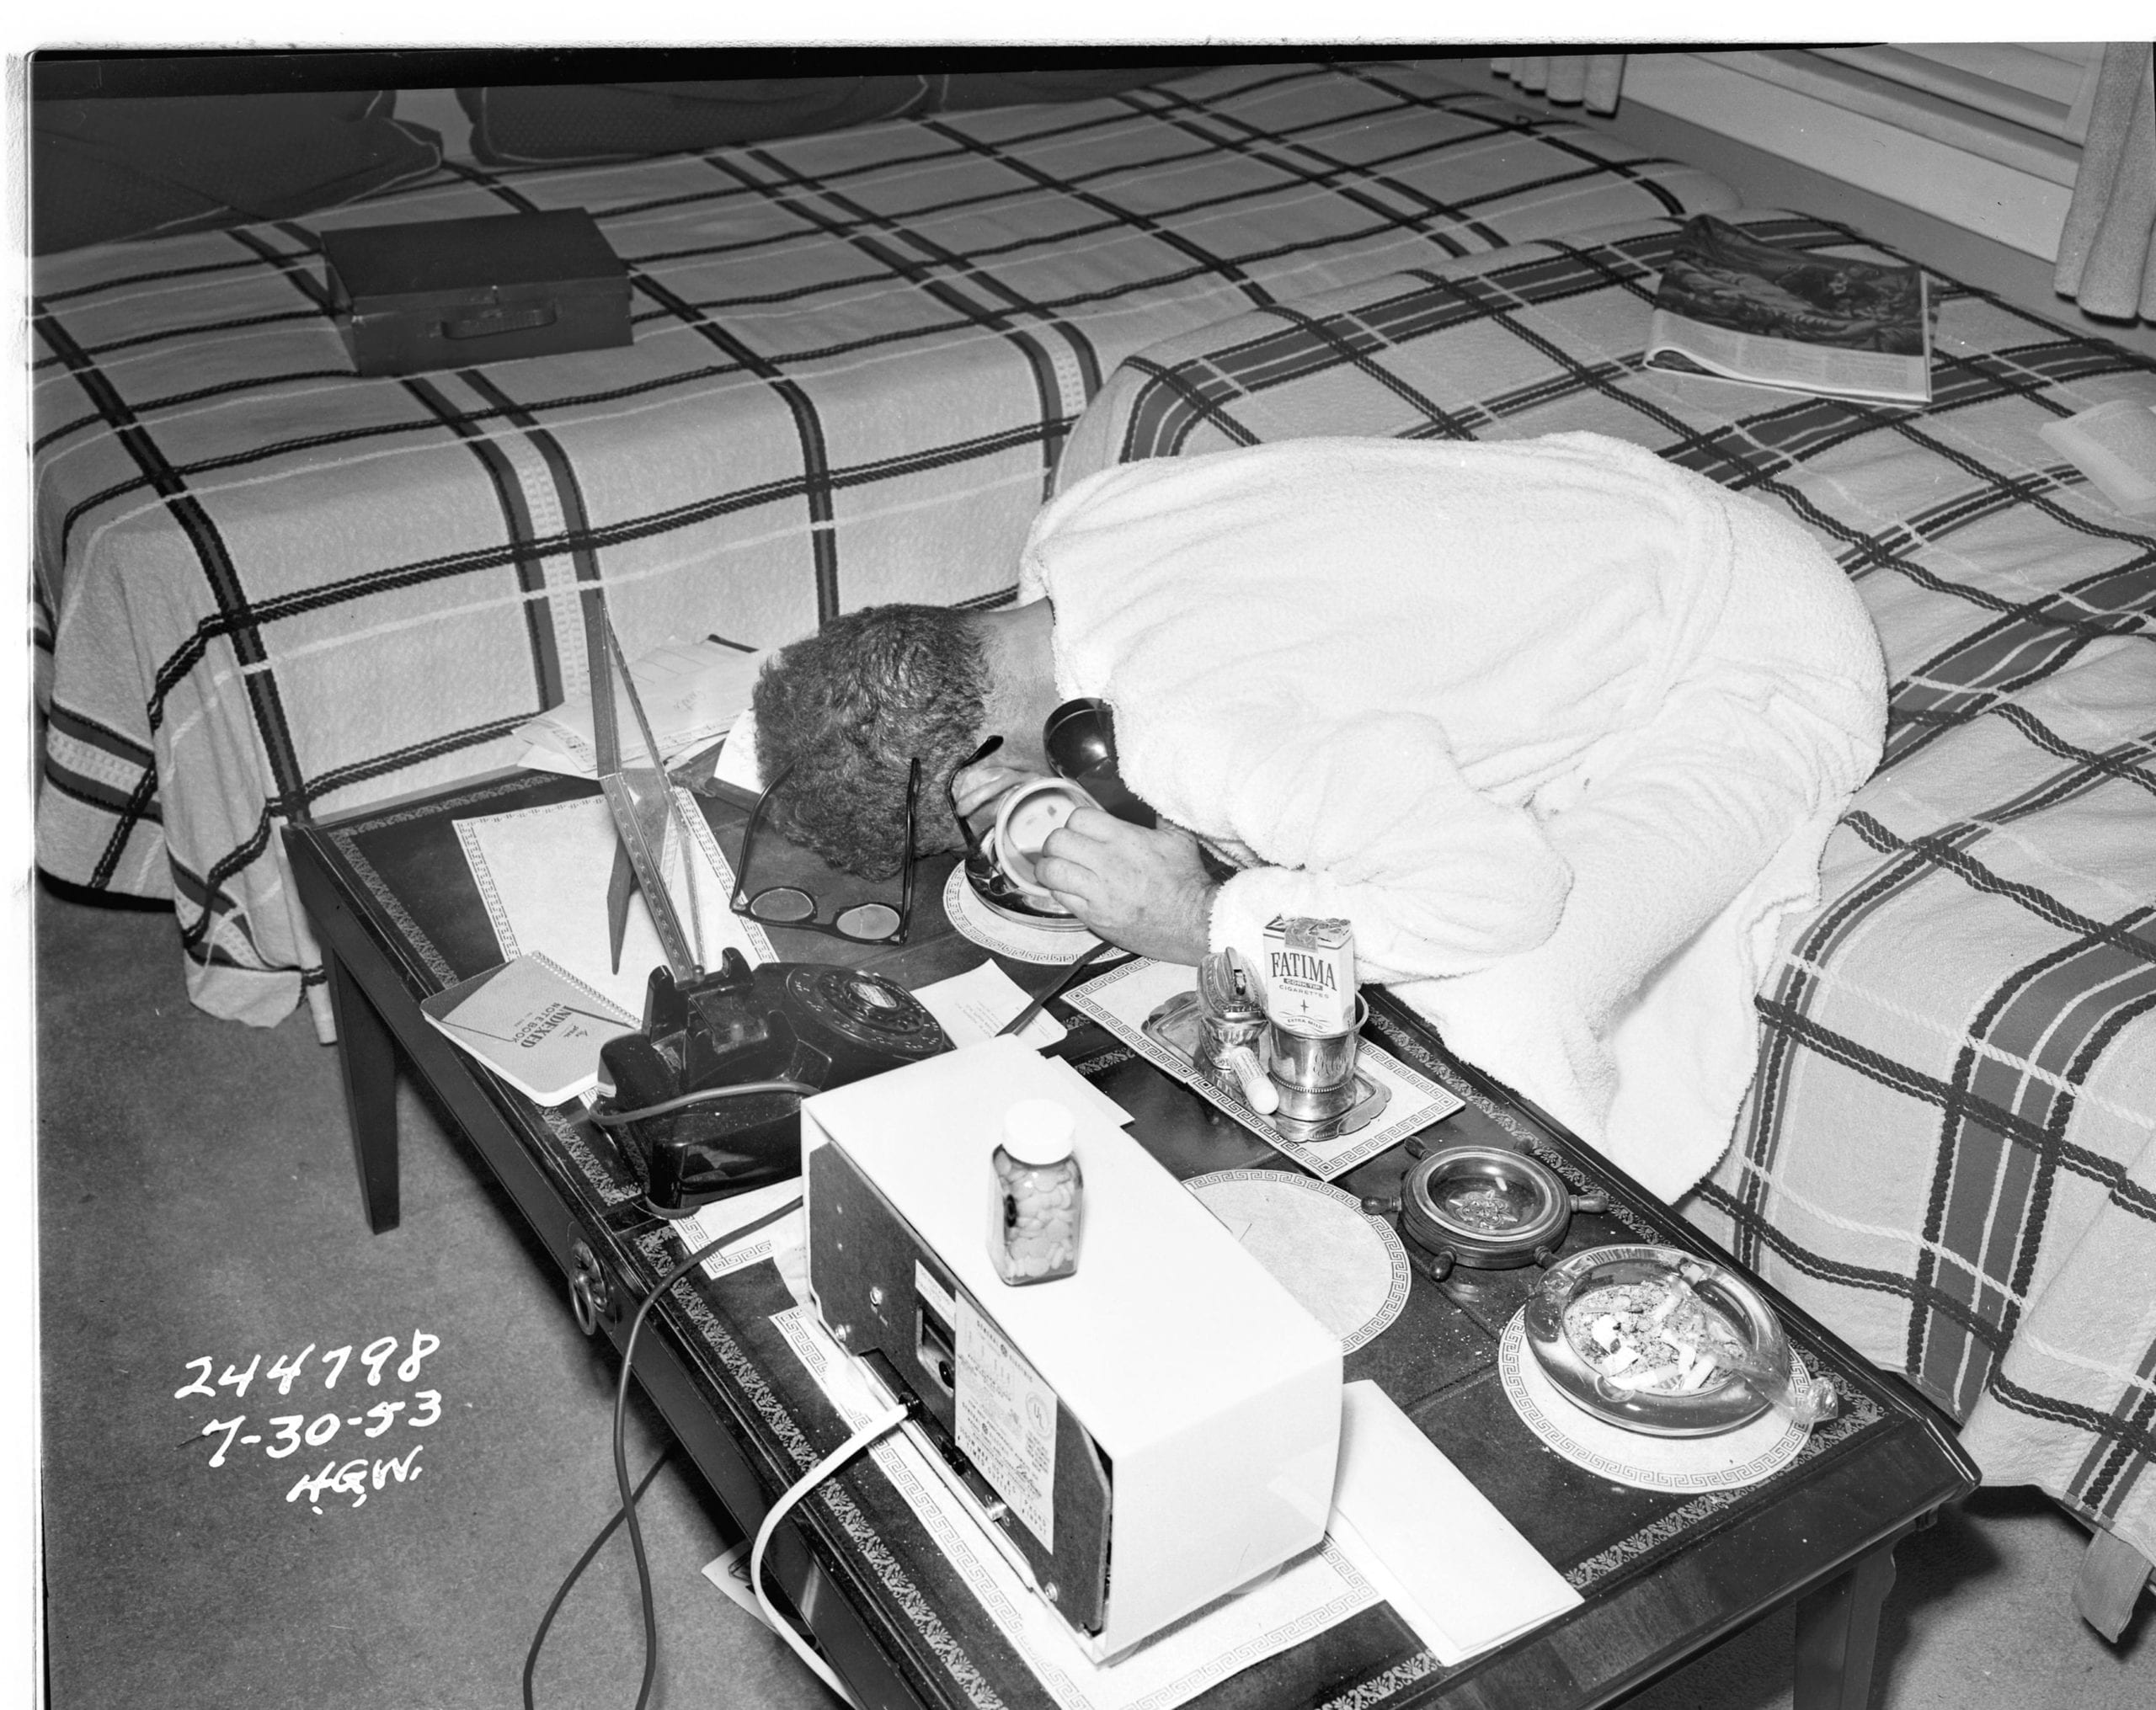 Car Museum Los Angeles >> James Ellroy finds real crime-scene photographs from LAPD in 1953 – British Journal of Photography